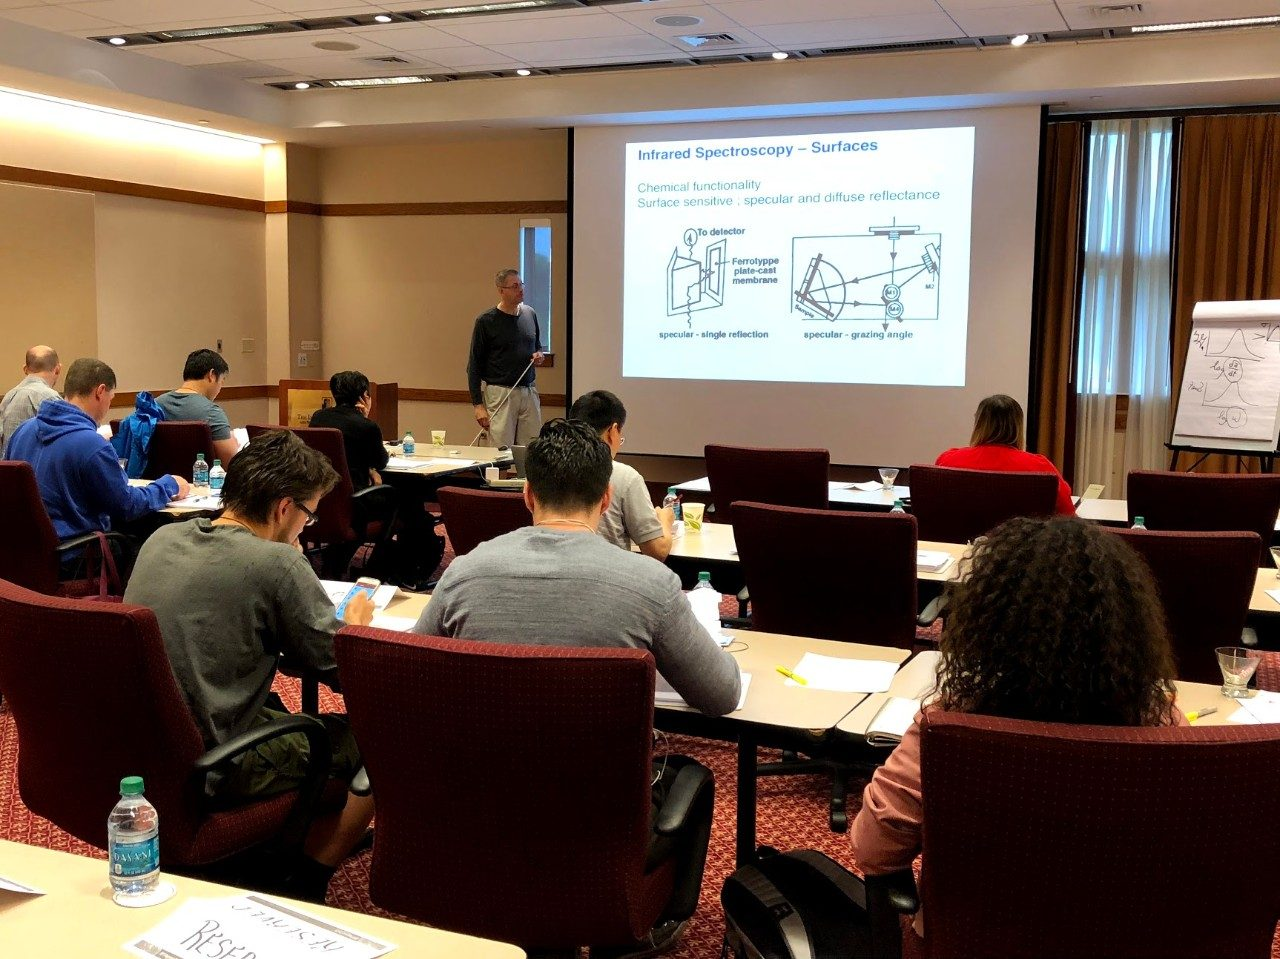 Alan Esker teaching the 2018 adhesion science short course